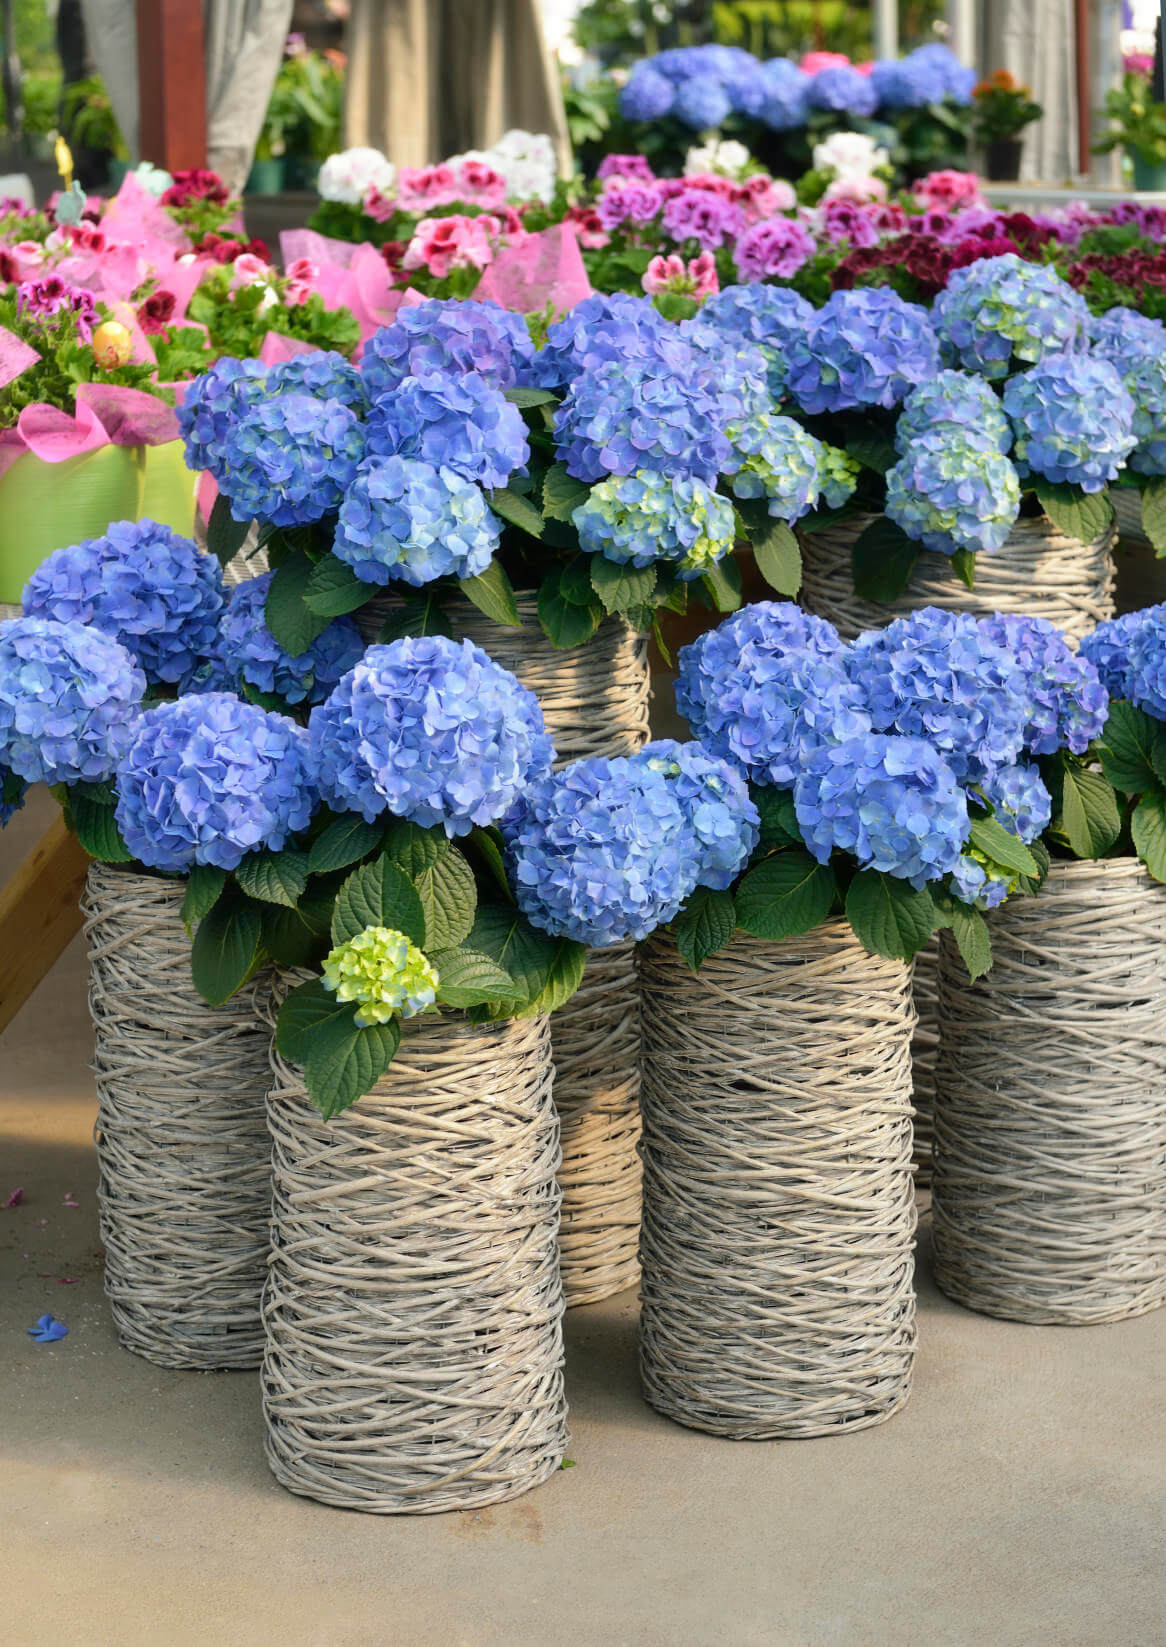 Floral Arrangements Using Hydrangeas : Hydrangea flower pot and planter arrangements photos